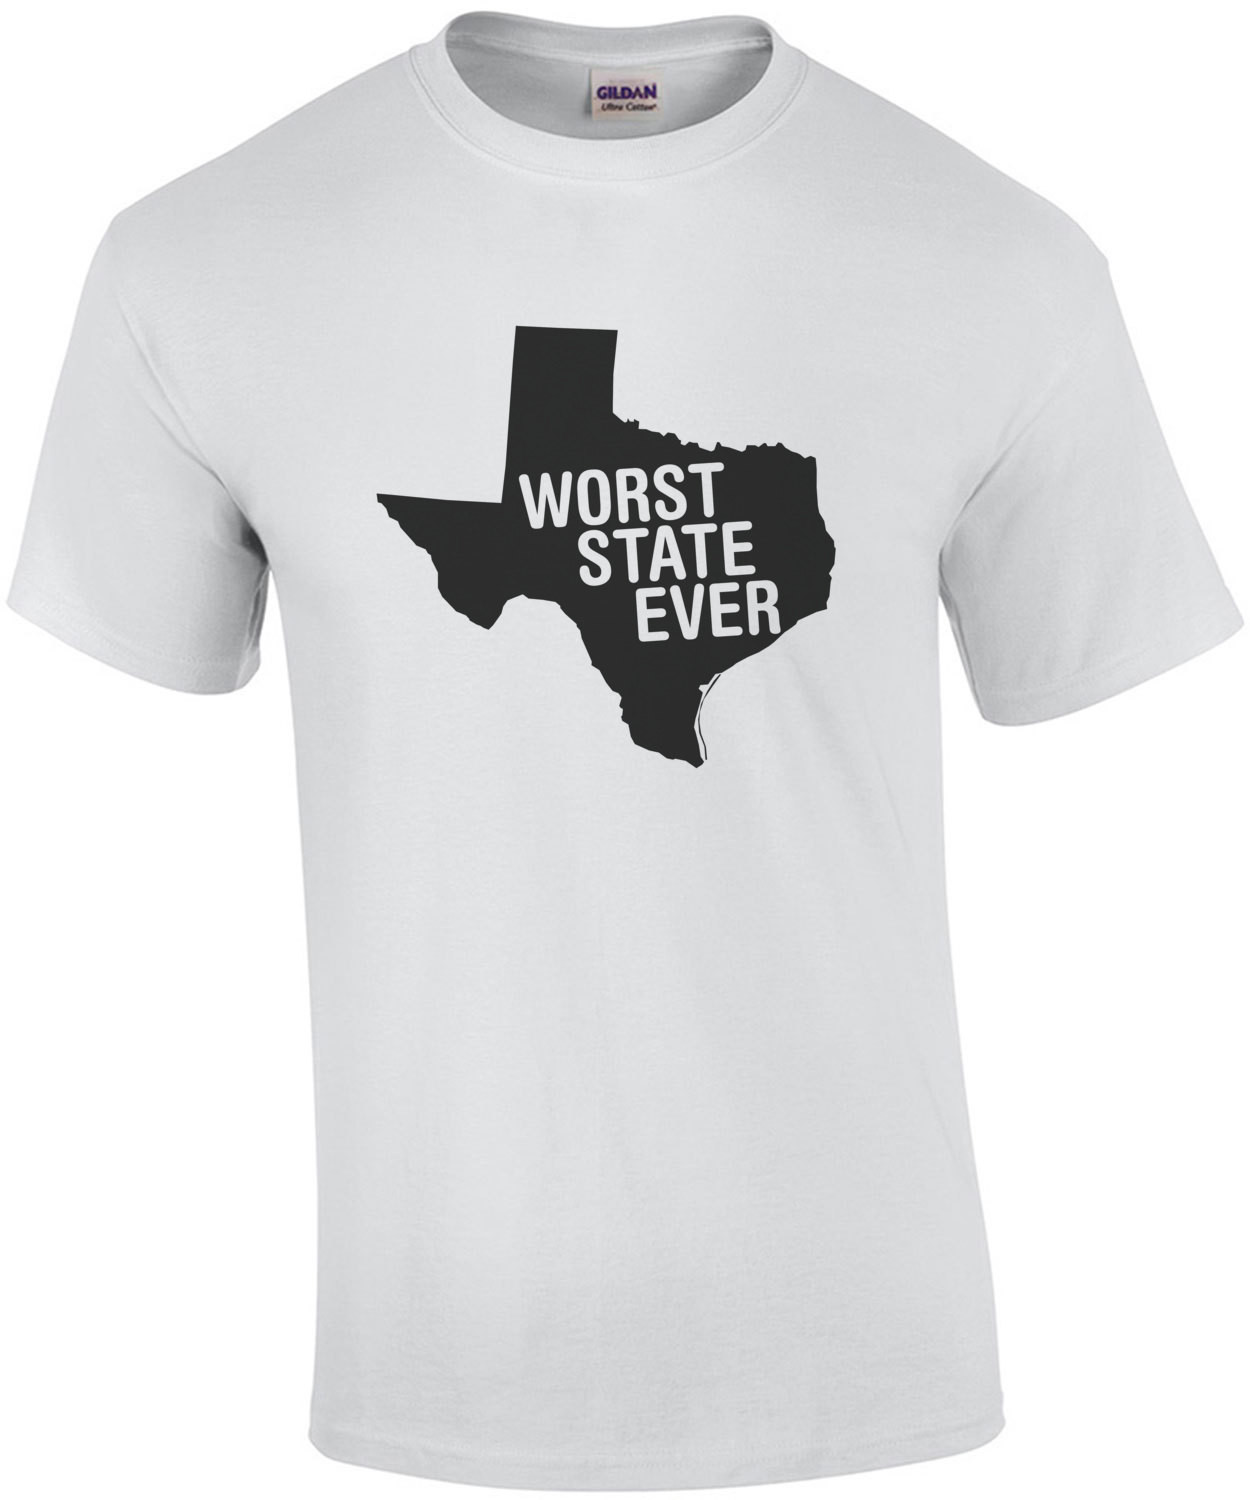 Texas Worst State Ever - Funny Texas T-Shirt